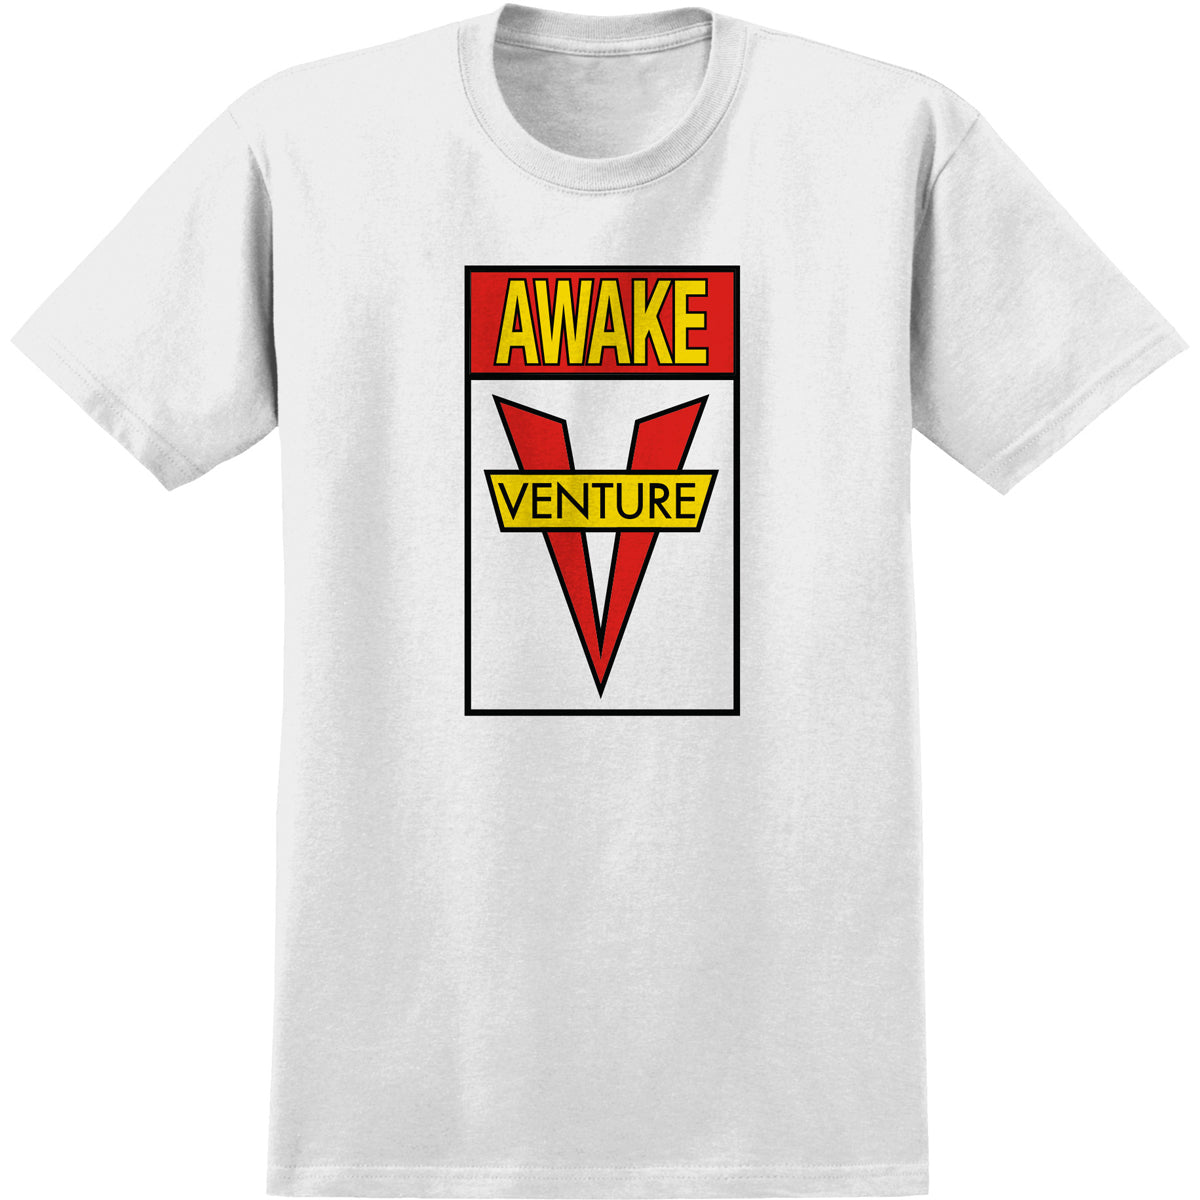 Venture Awake Tee White/Red/Yellow